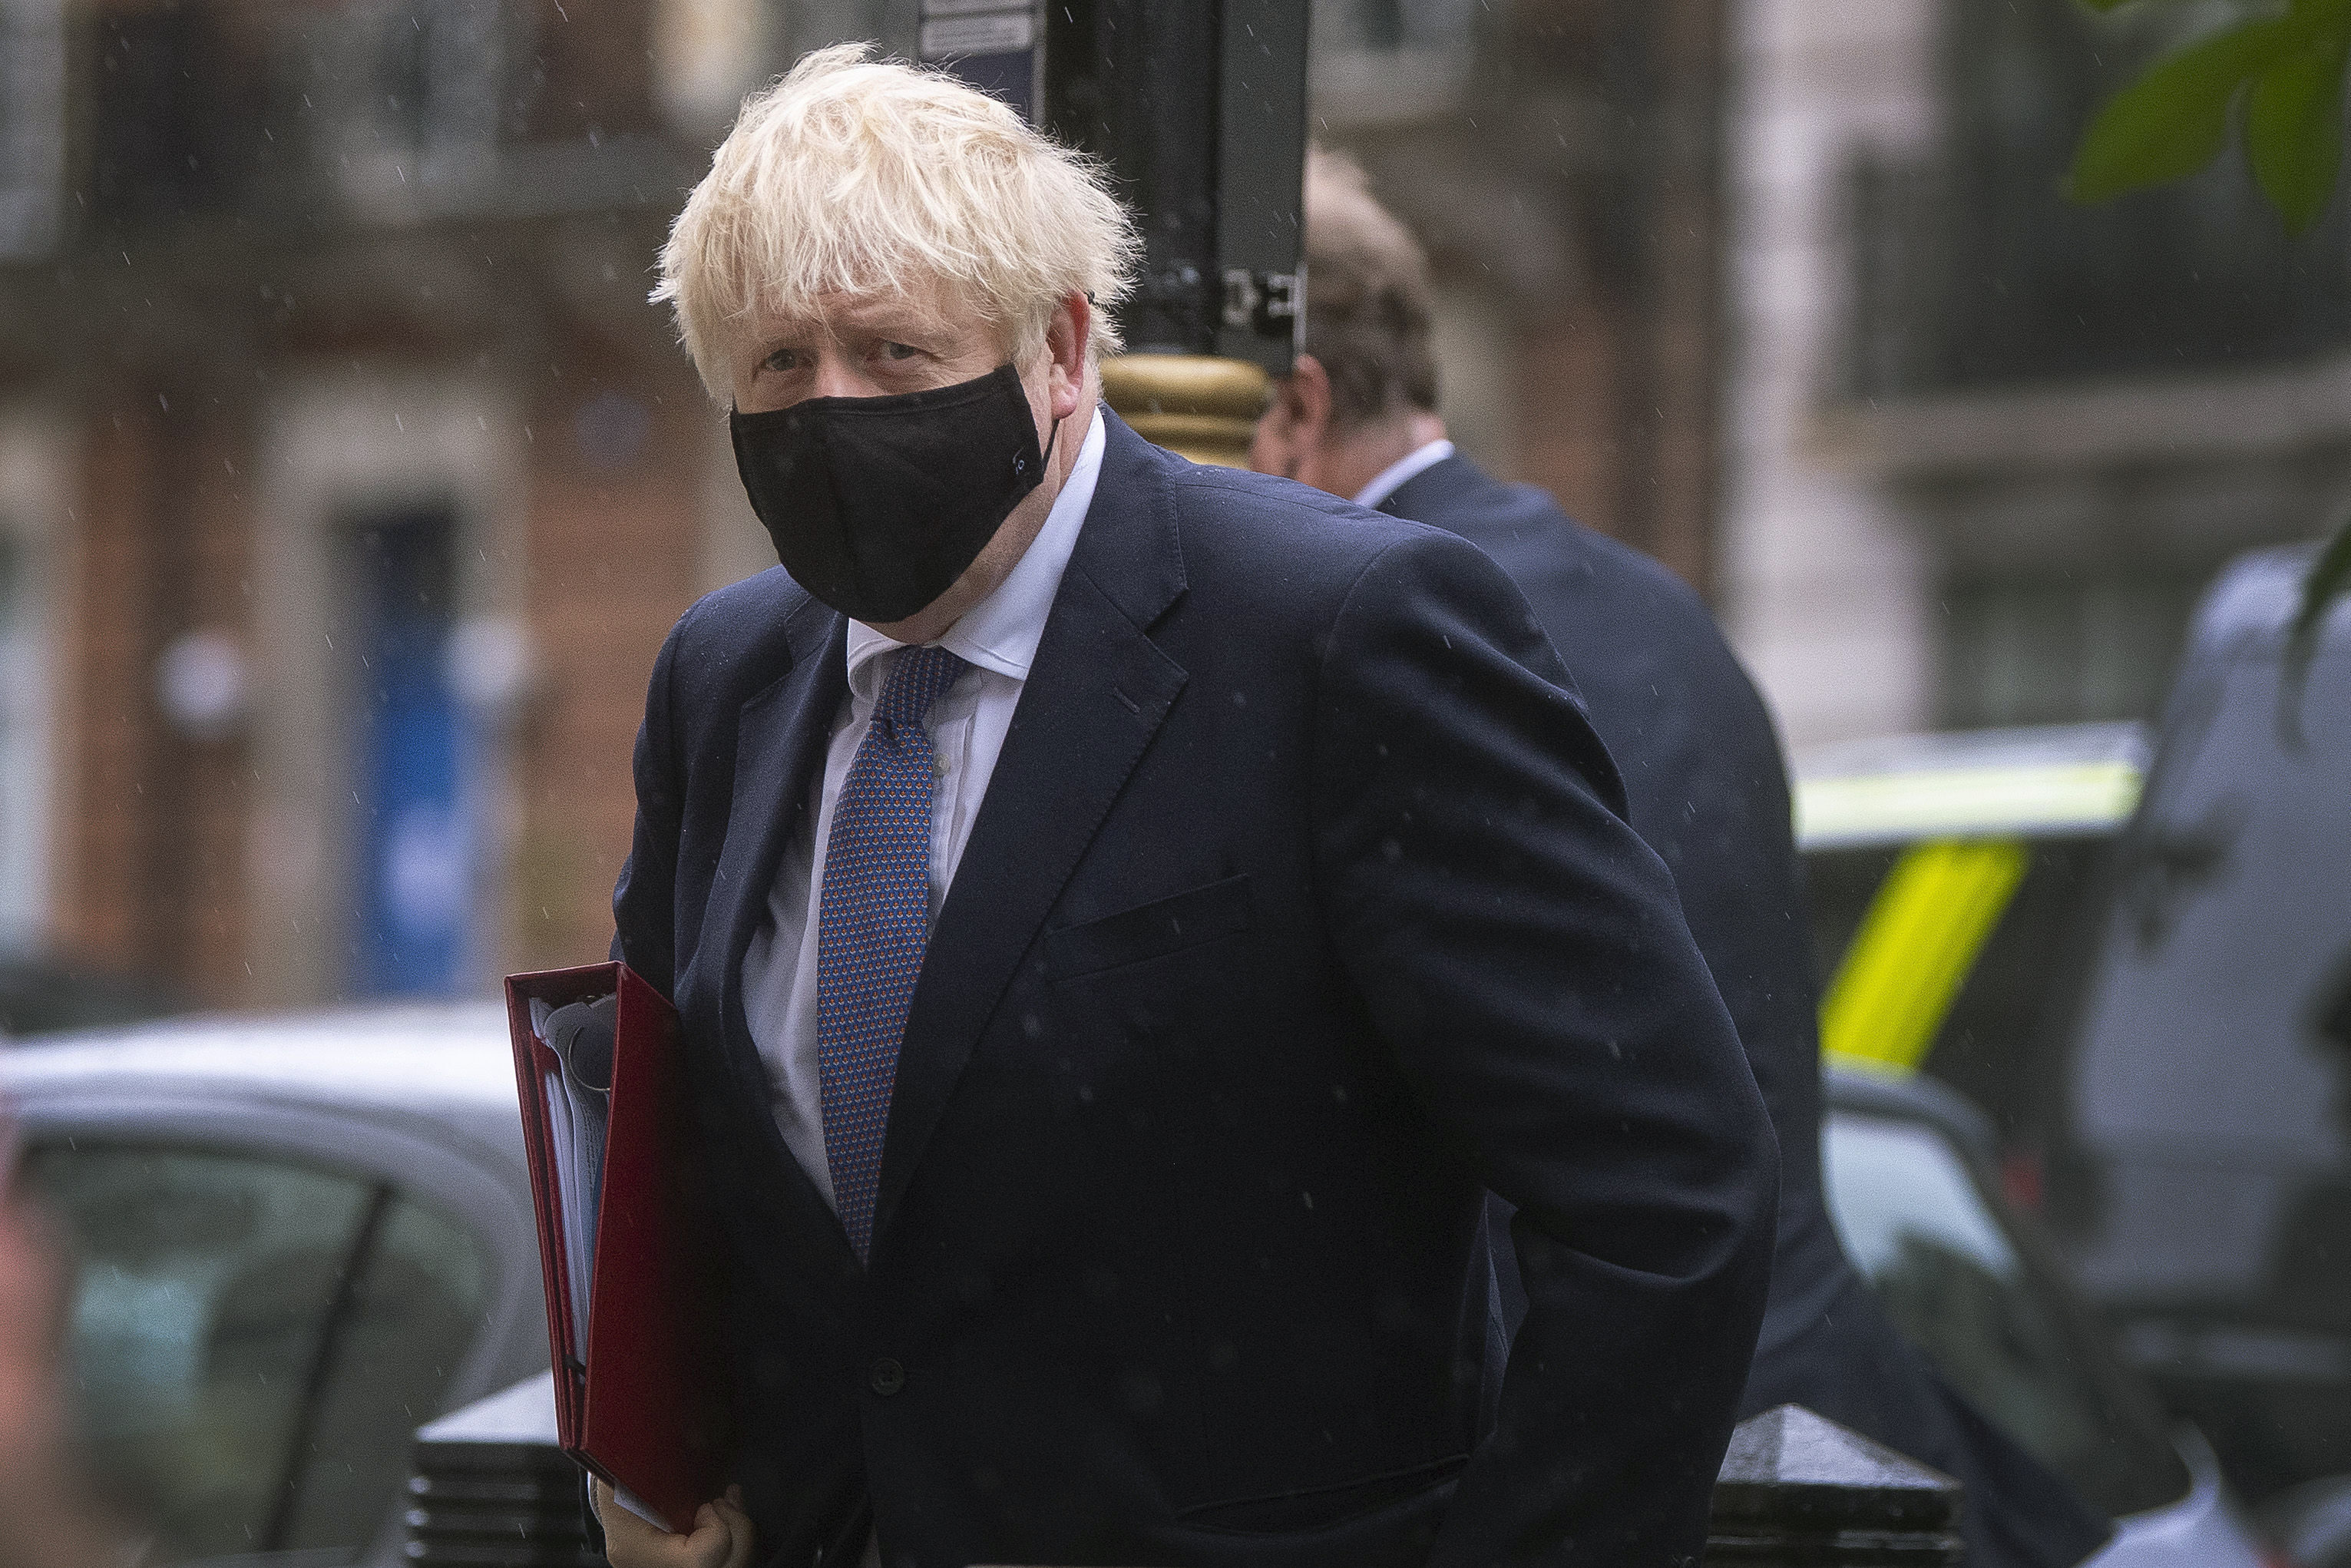 Britain's Prime Minister Boris Johnson arrives at BBC Broadcasting House to appear on the Andrew Marr show, in London, Oct. 4, 2020.